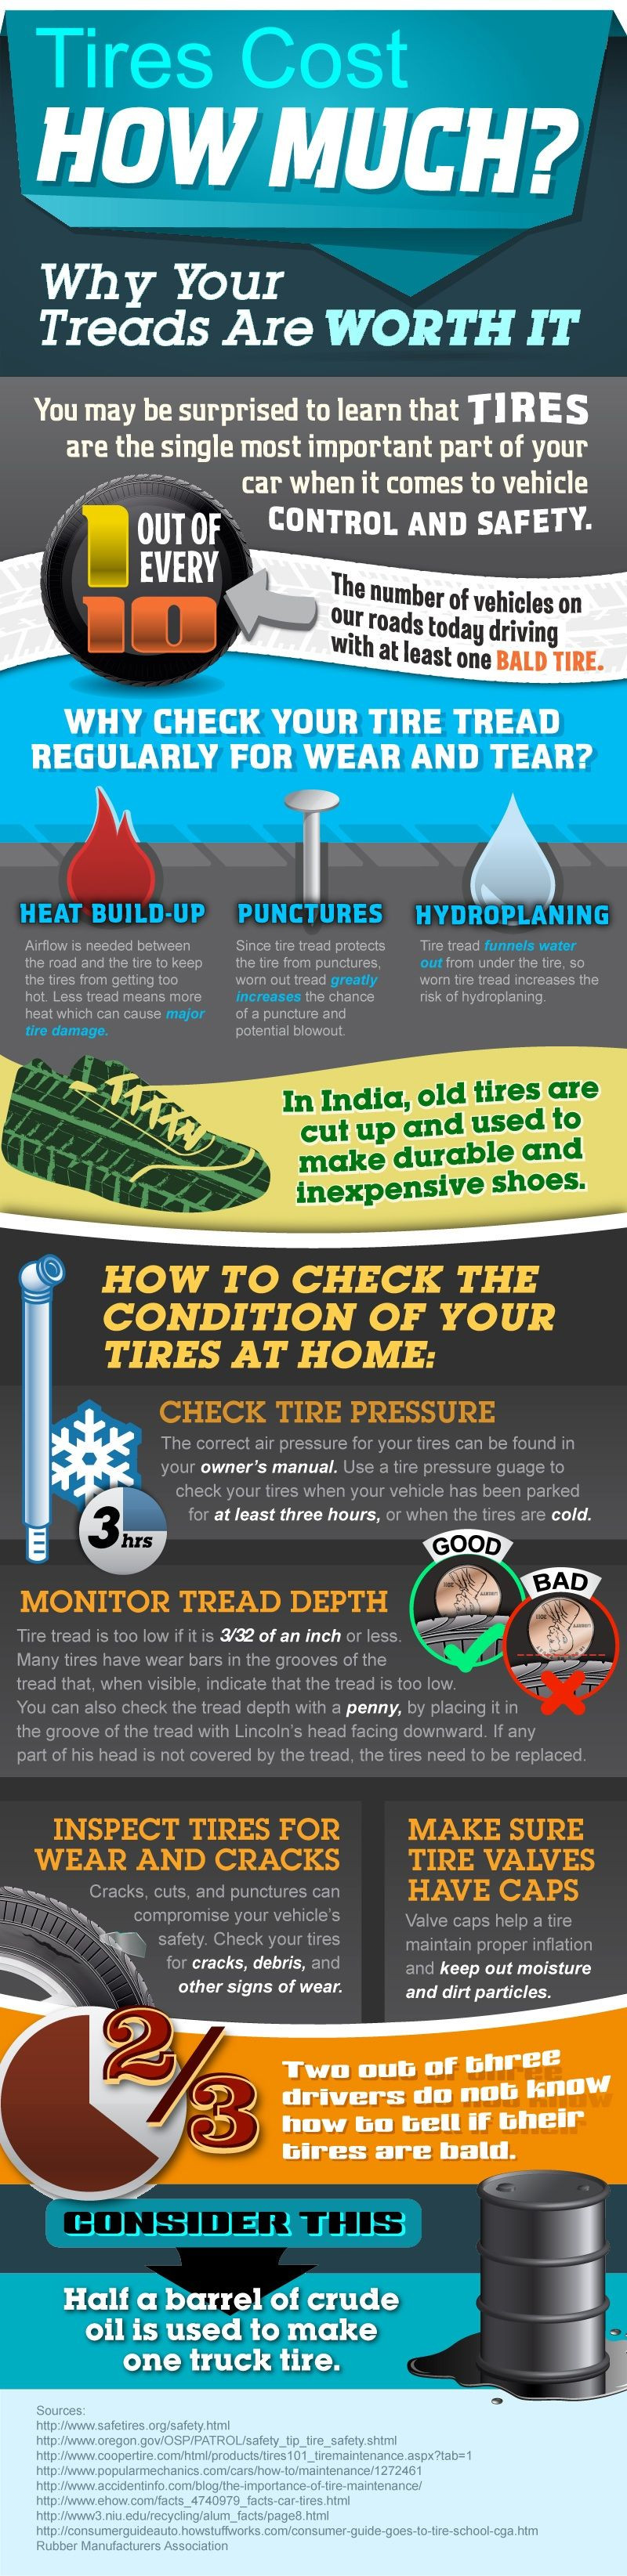 tires cost how much why your treads are worth it infographic you may be surprised to lea. Black Bedroom Furniture Sets. Home Design Ideas